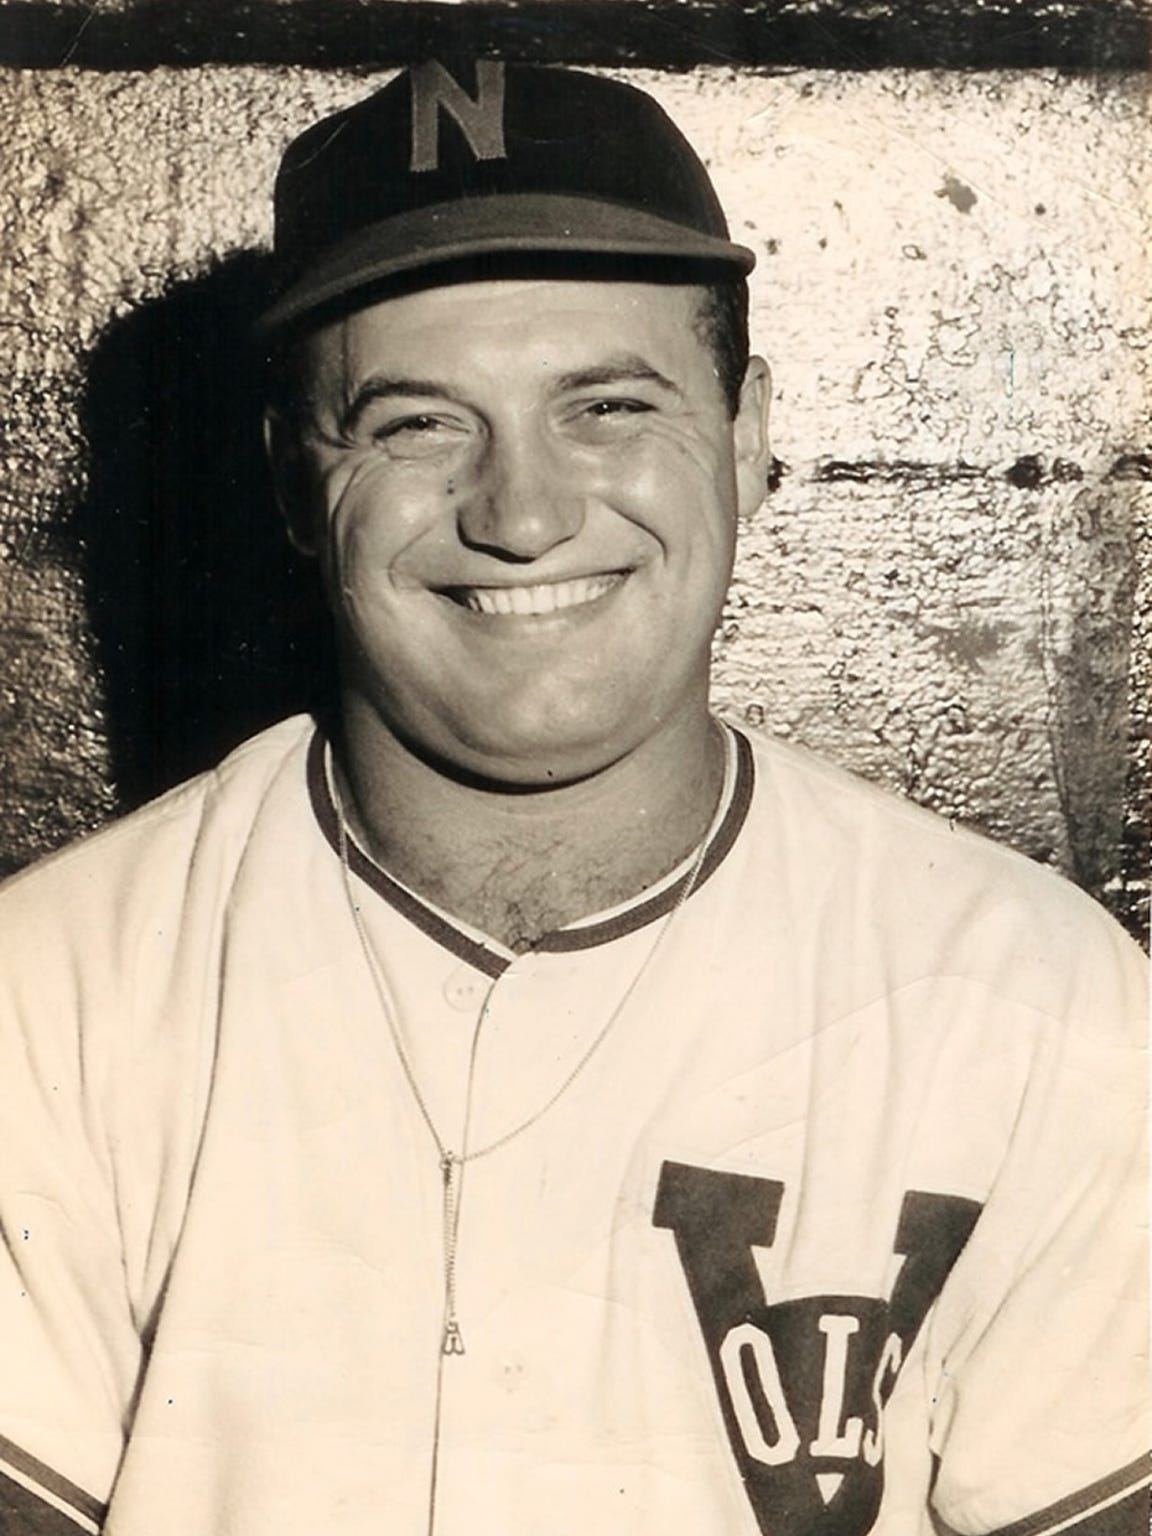 Carl Sawatski played for the 1949-50 Nashville Vols.